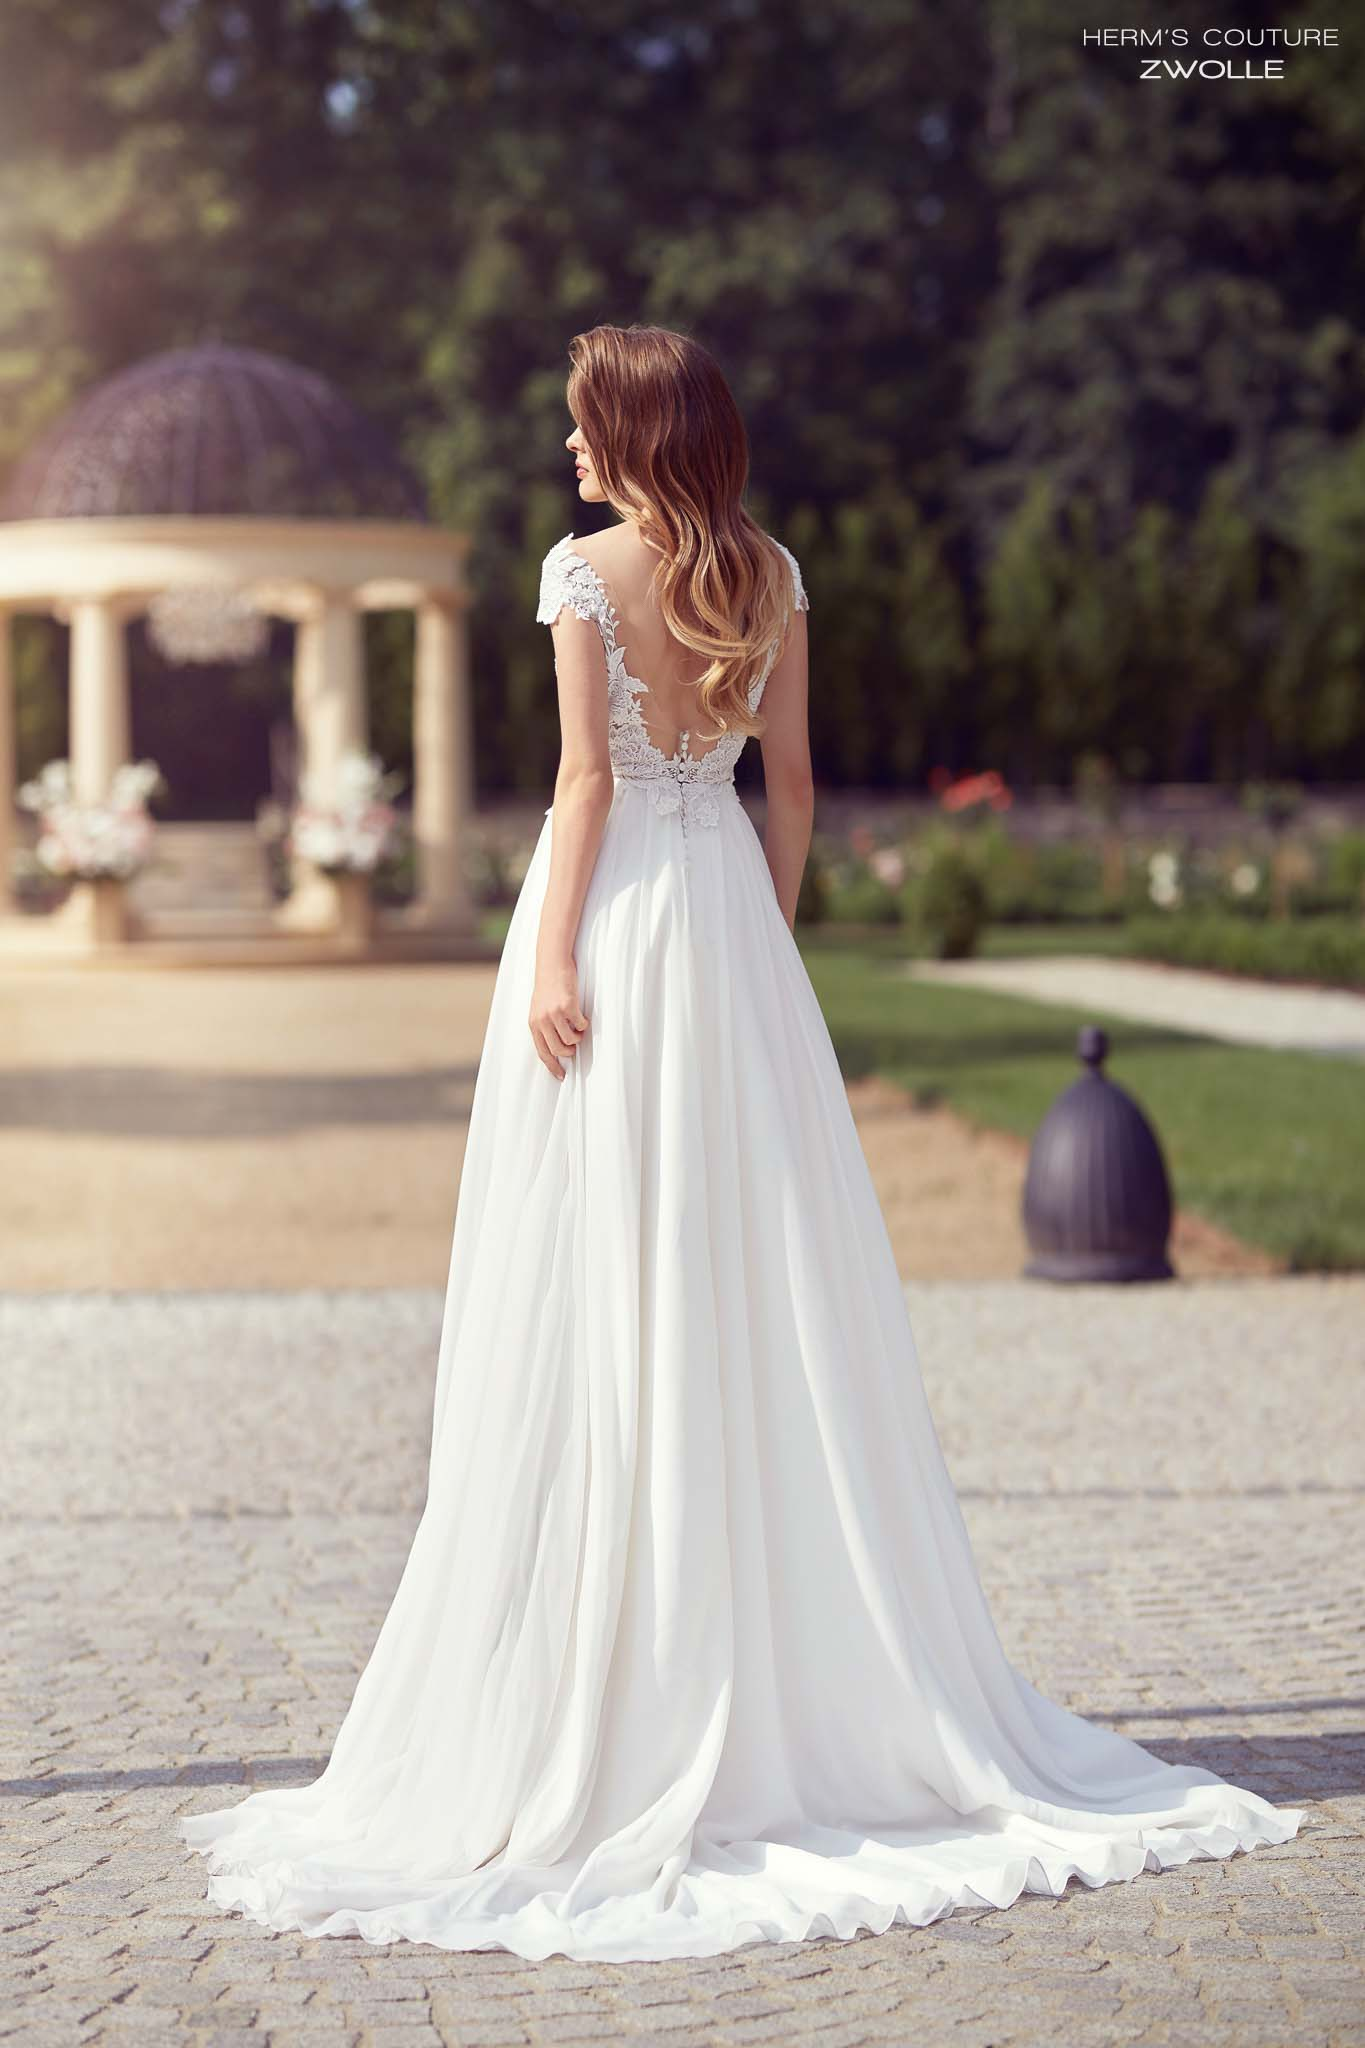 wedding dress herms bridal couture Zwolle